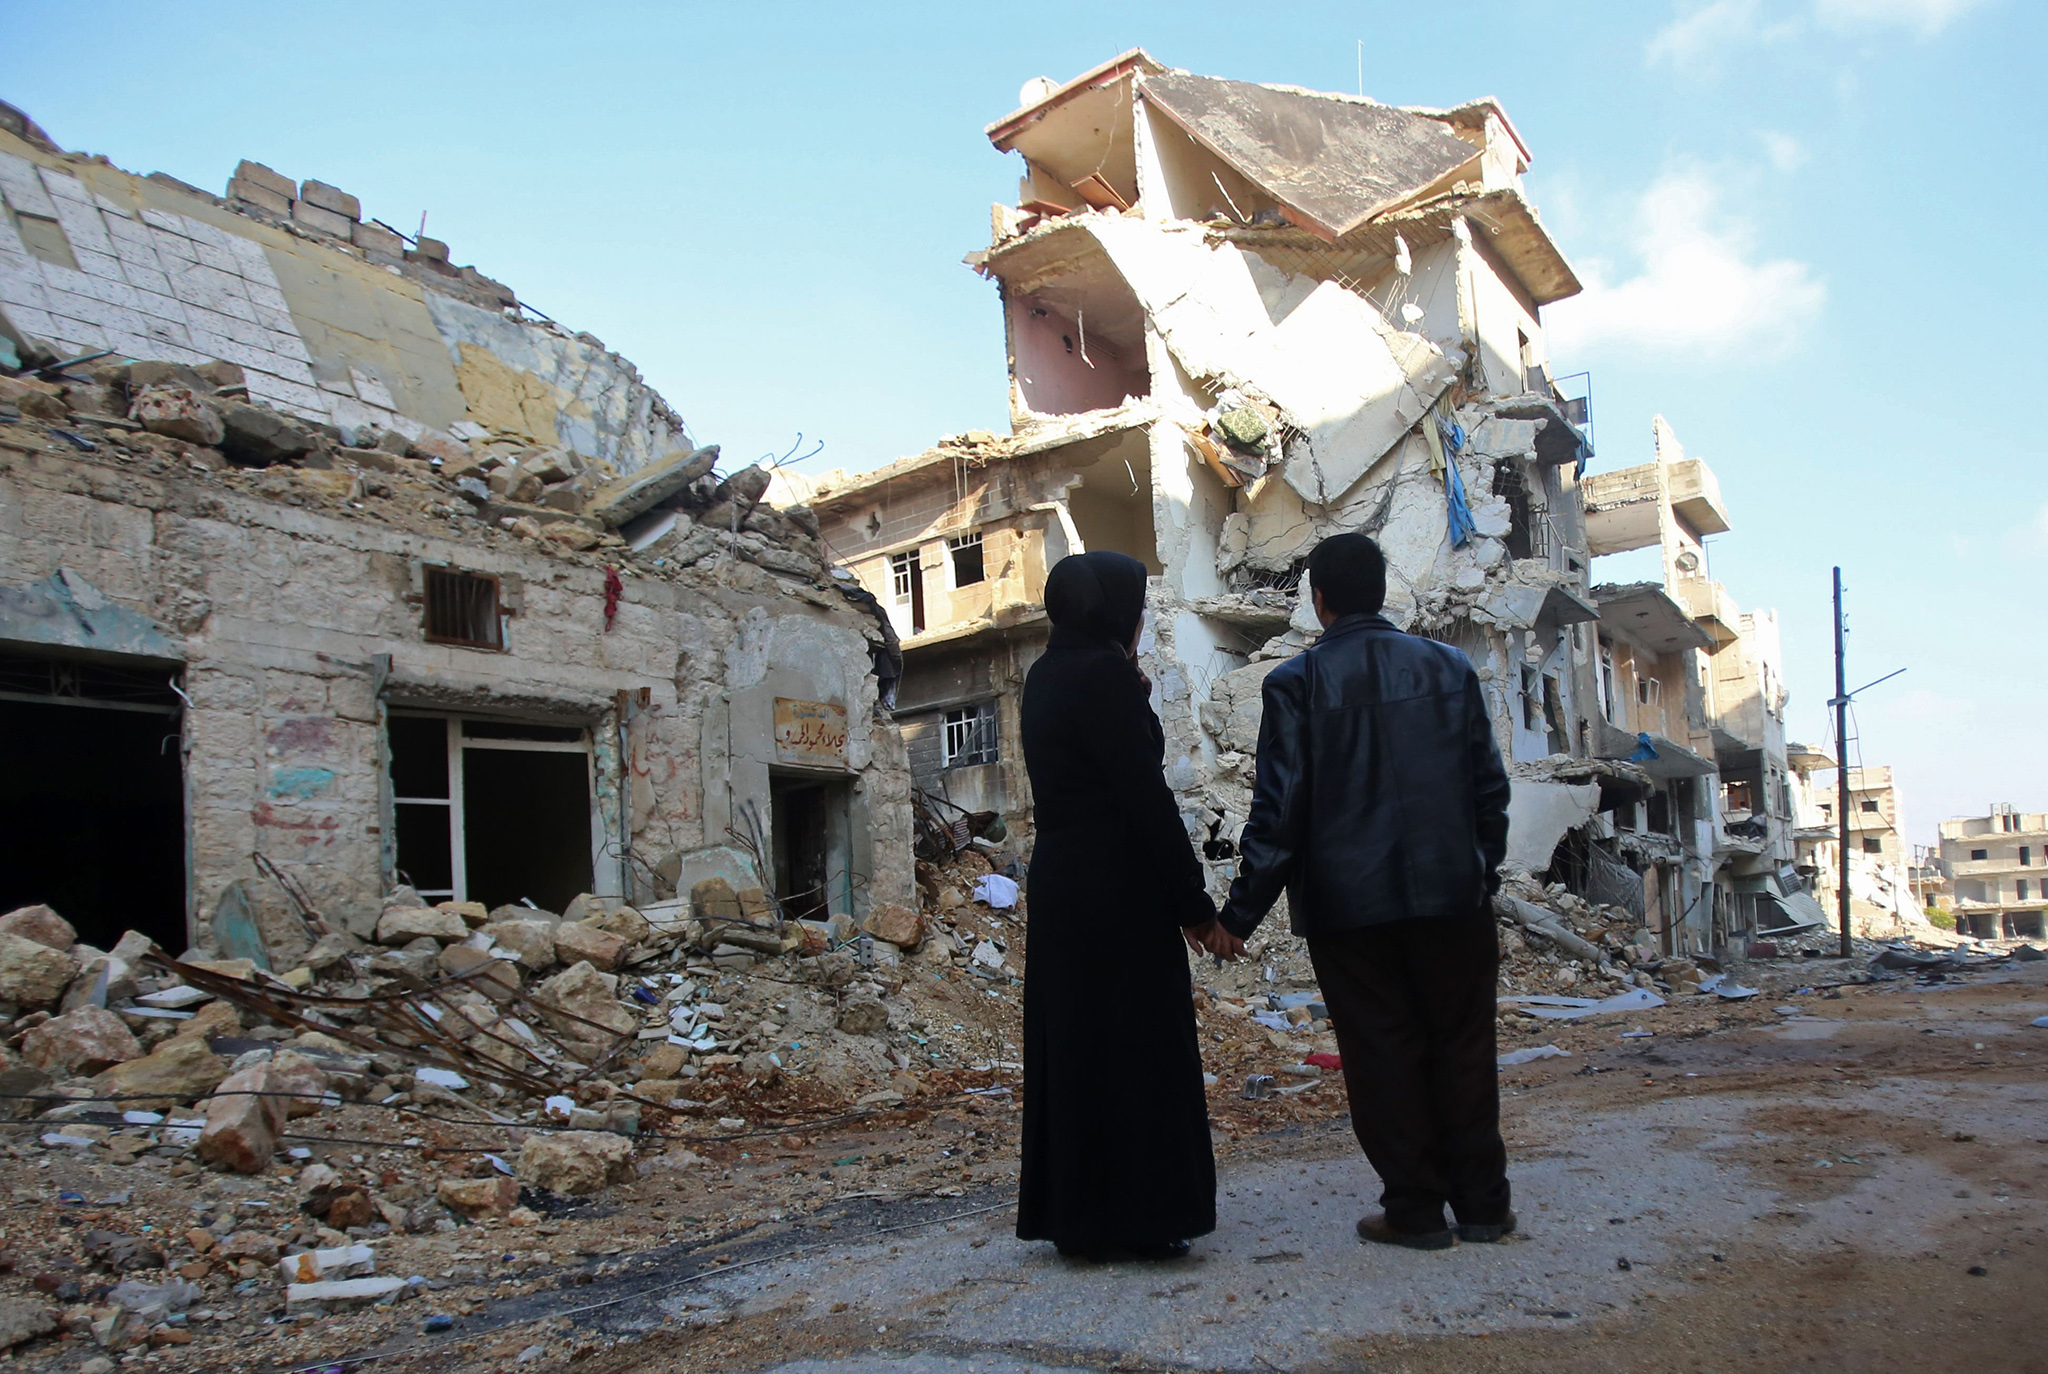 Kefa Jawish (L) and her husband Tajeddin Ahmed look a destroyed building in the Aleppo's northeastern Haydariya neighbourhood as they head to check their house for the first time in four years on December 4, 2016.    Jawish was among hundreds of Syrians returning to east Aleppo in recent days after the army recaptured large swathes of the city from rebels and encouraged residents to visit neighbourhoods and homes they left years earlier.   / AFP PHOTO / Youssef KARWASHAN / TO GO WITH AFP STORY BY RIM HADDADYOUSSEF KARWASHAN/AFP/Getty Images